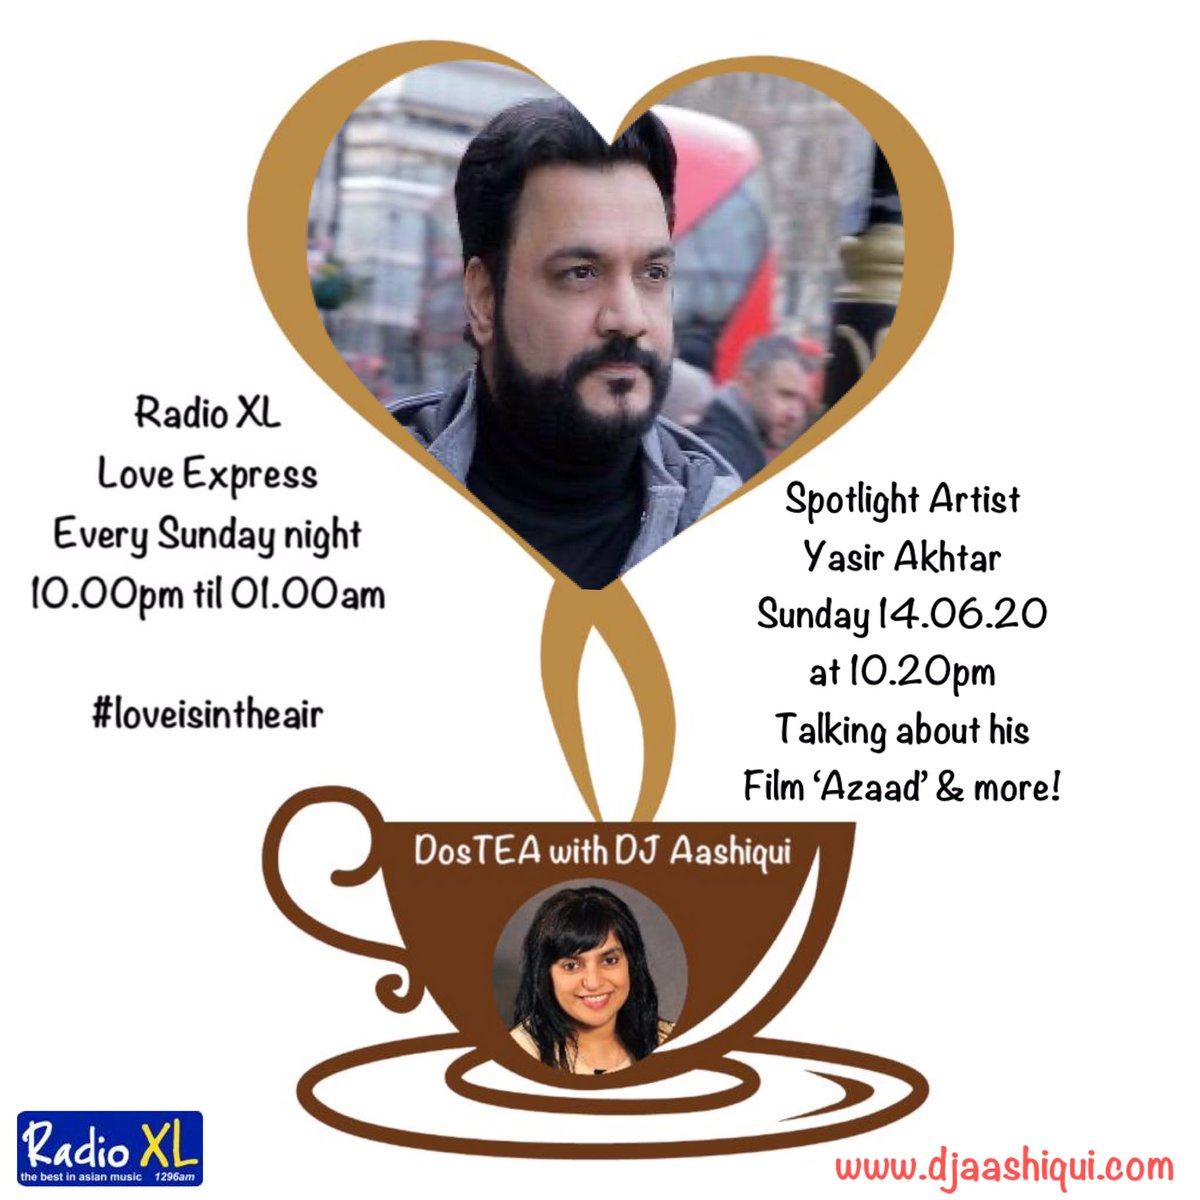 DosTEA with @DJAashiqui 14.06.20 at 10.20pm. Exclusive Interview with multi talented icon, film maker, singer, actor, director/producer @Yasir_Akhtar_ on the success of his Film 'Azaad', Sufi song 'Saiyaan', future projects, love & more! #TuneInForLove https://t.co/NhvgSDefPp ❤️ https://t.co/m6qKsgg8um